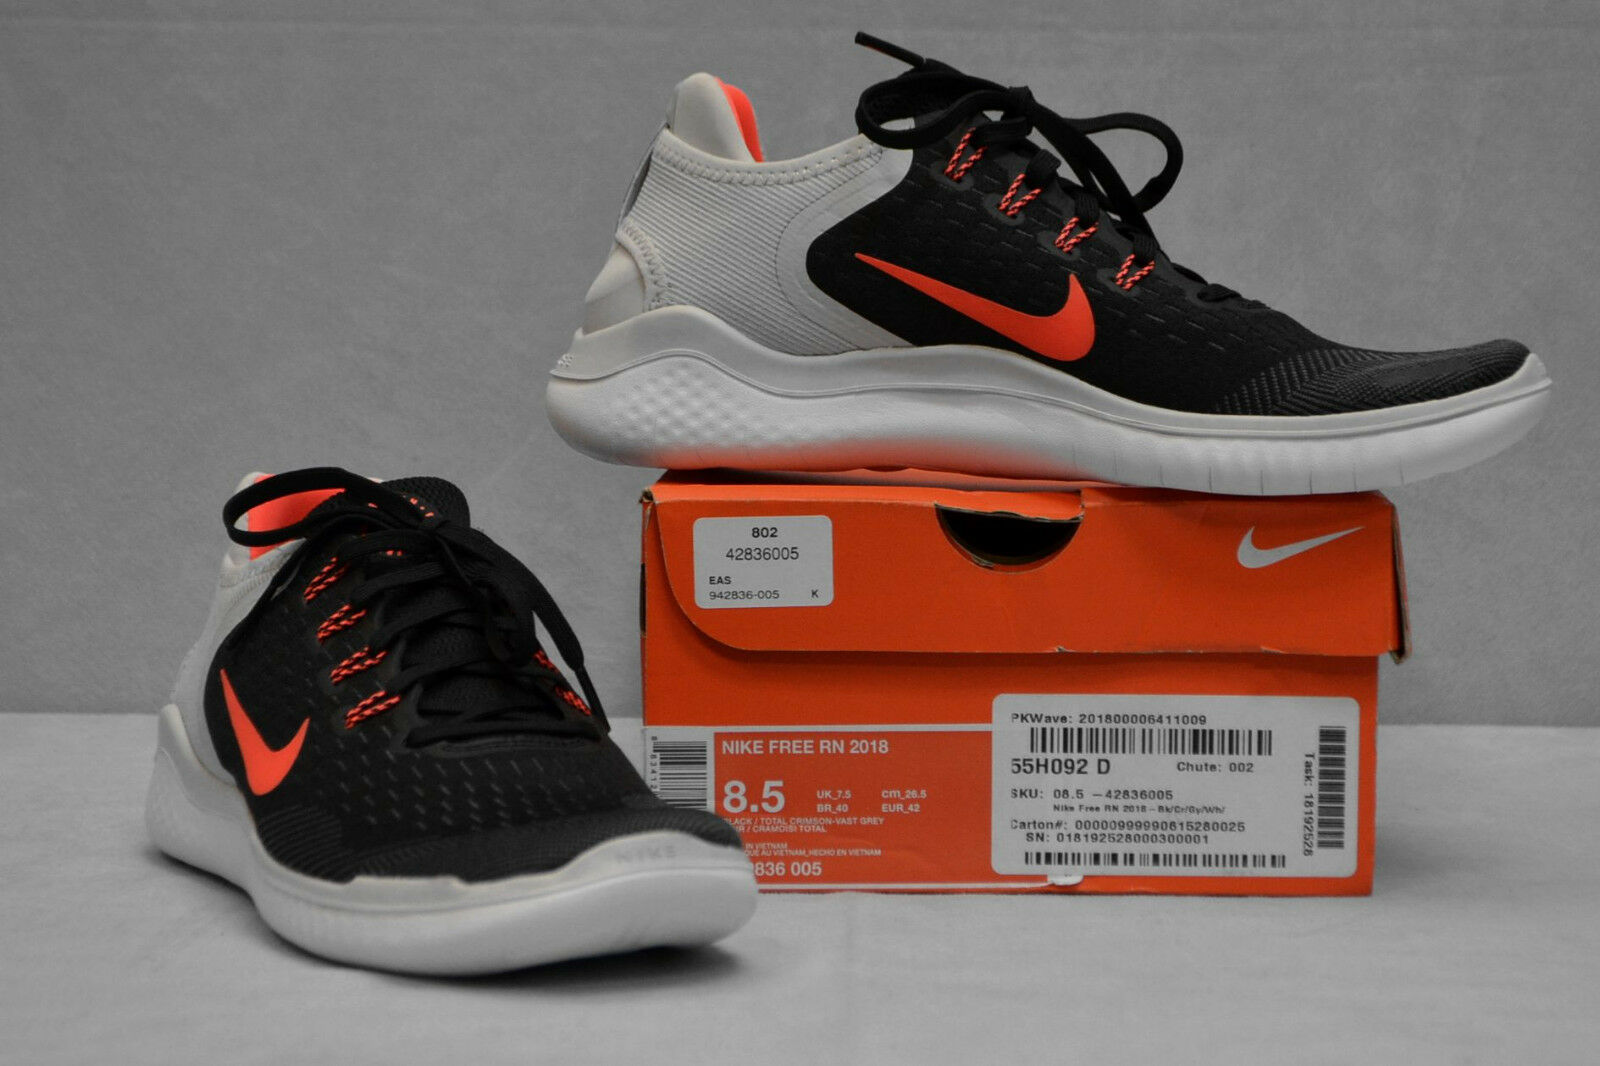 B6 NEW NIKE FREE RN 2018 Blk Crimson-Vast Grey Running shoes 942836 005 Size 8.5